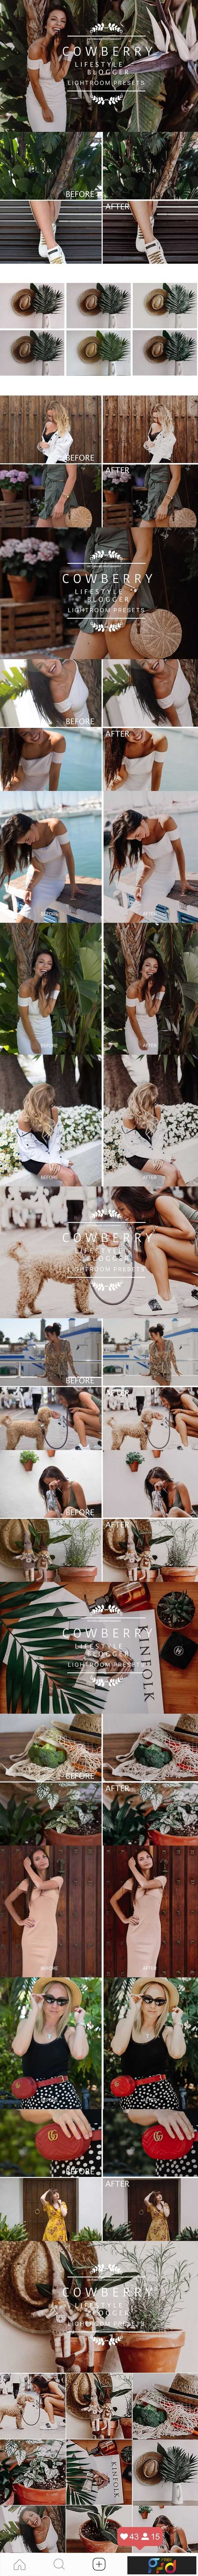 1806280 COWBERRY Lifestyle Blogger Presets 2583027 1